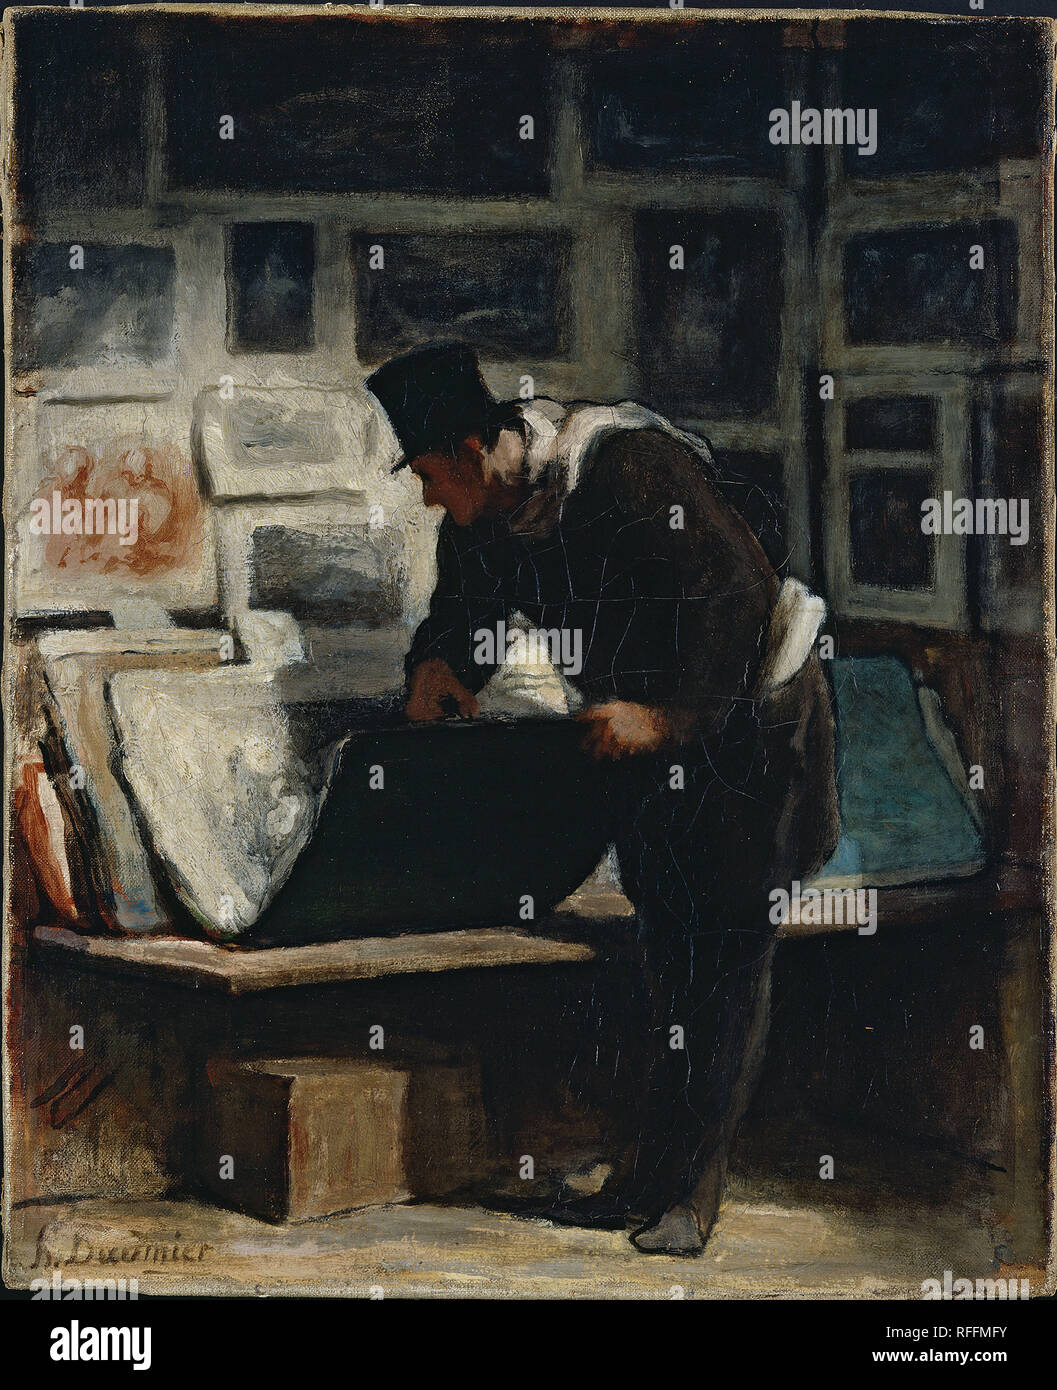 The print collector Honor Daumier.jpg - RFFMFY  - Stock Image